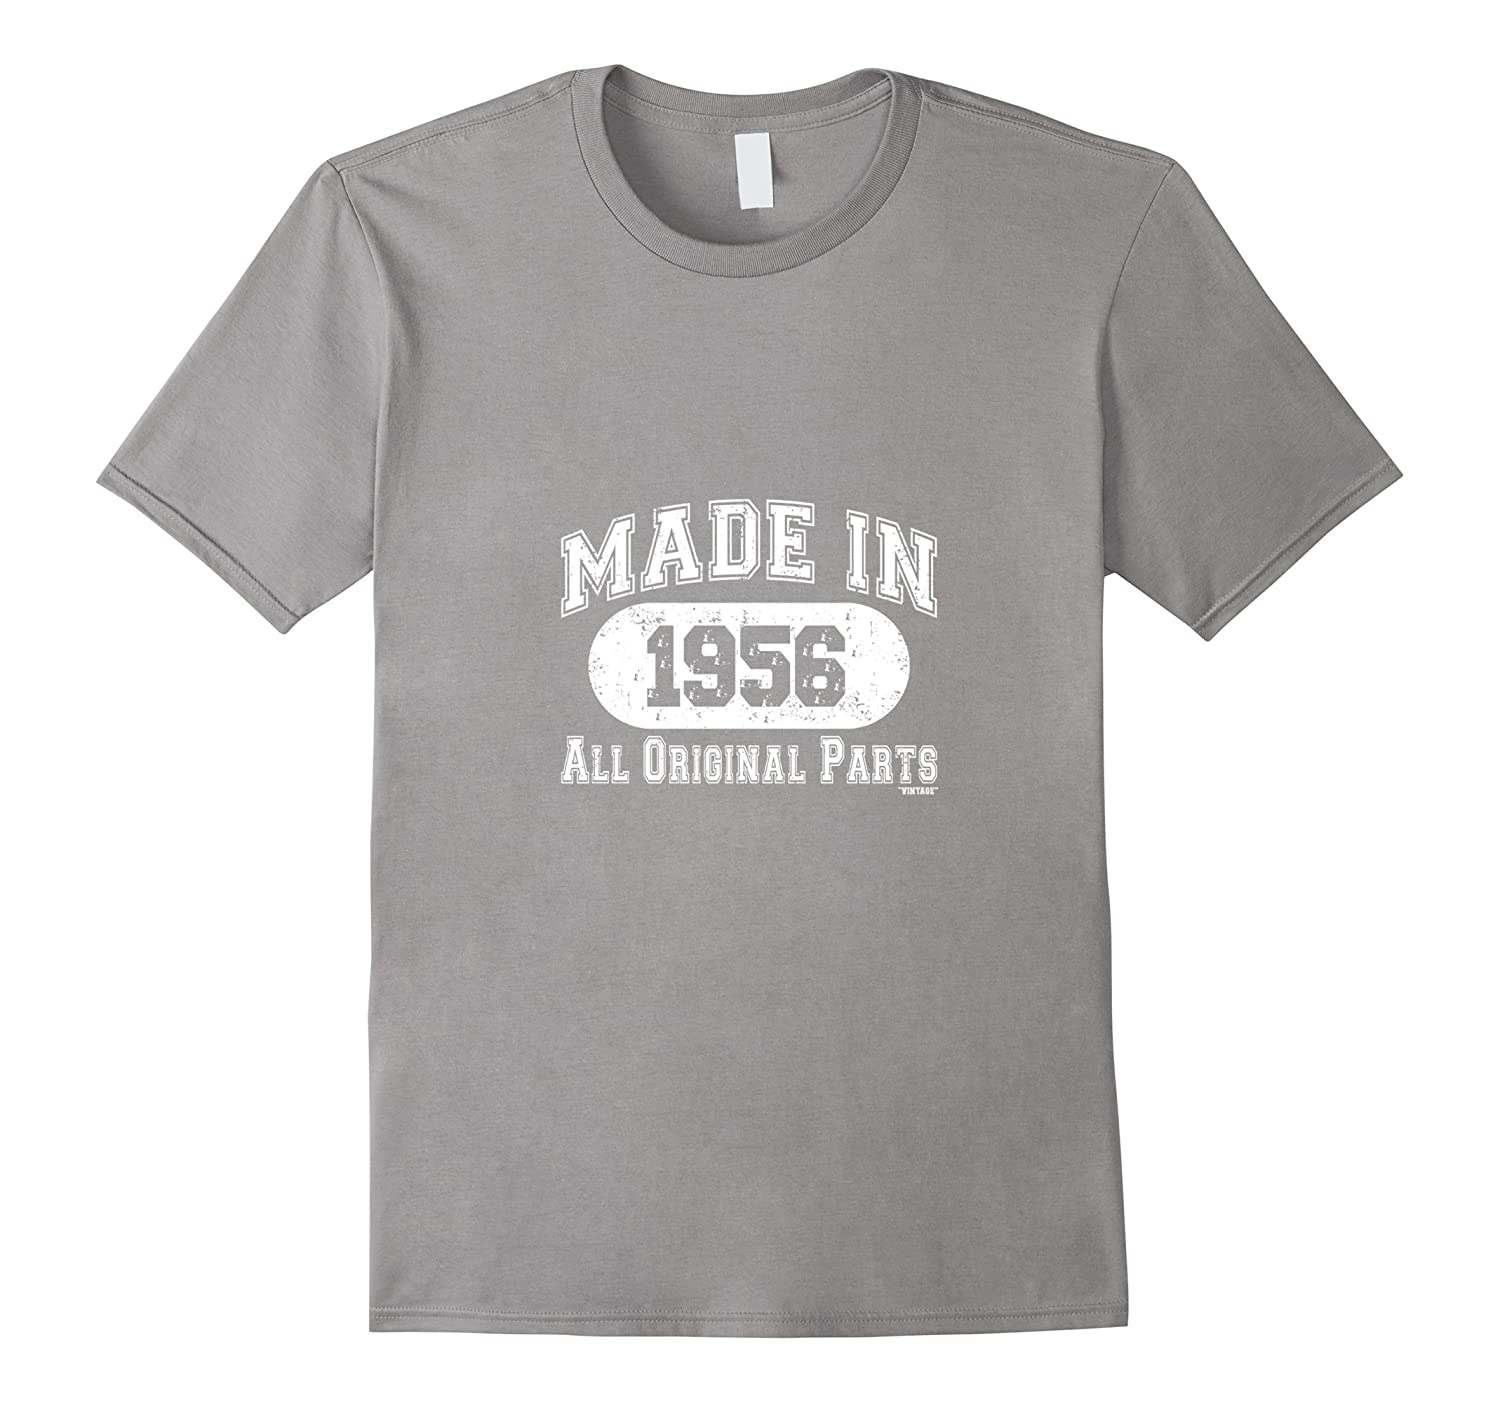 Made In 1956 All Original Parts Funny Birthday T-Shirt w